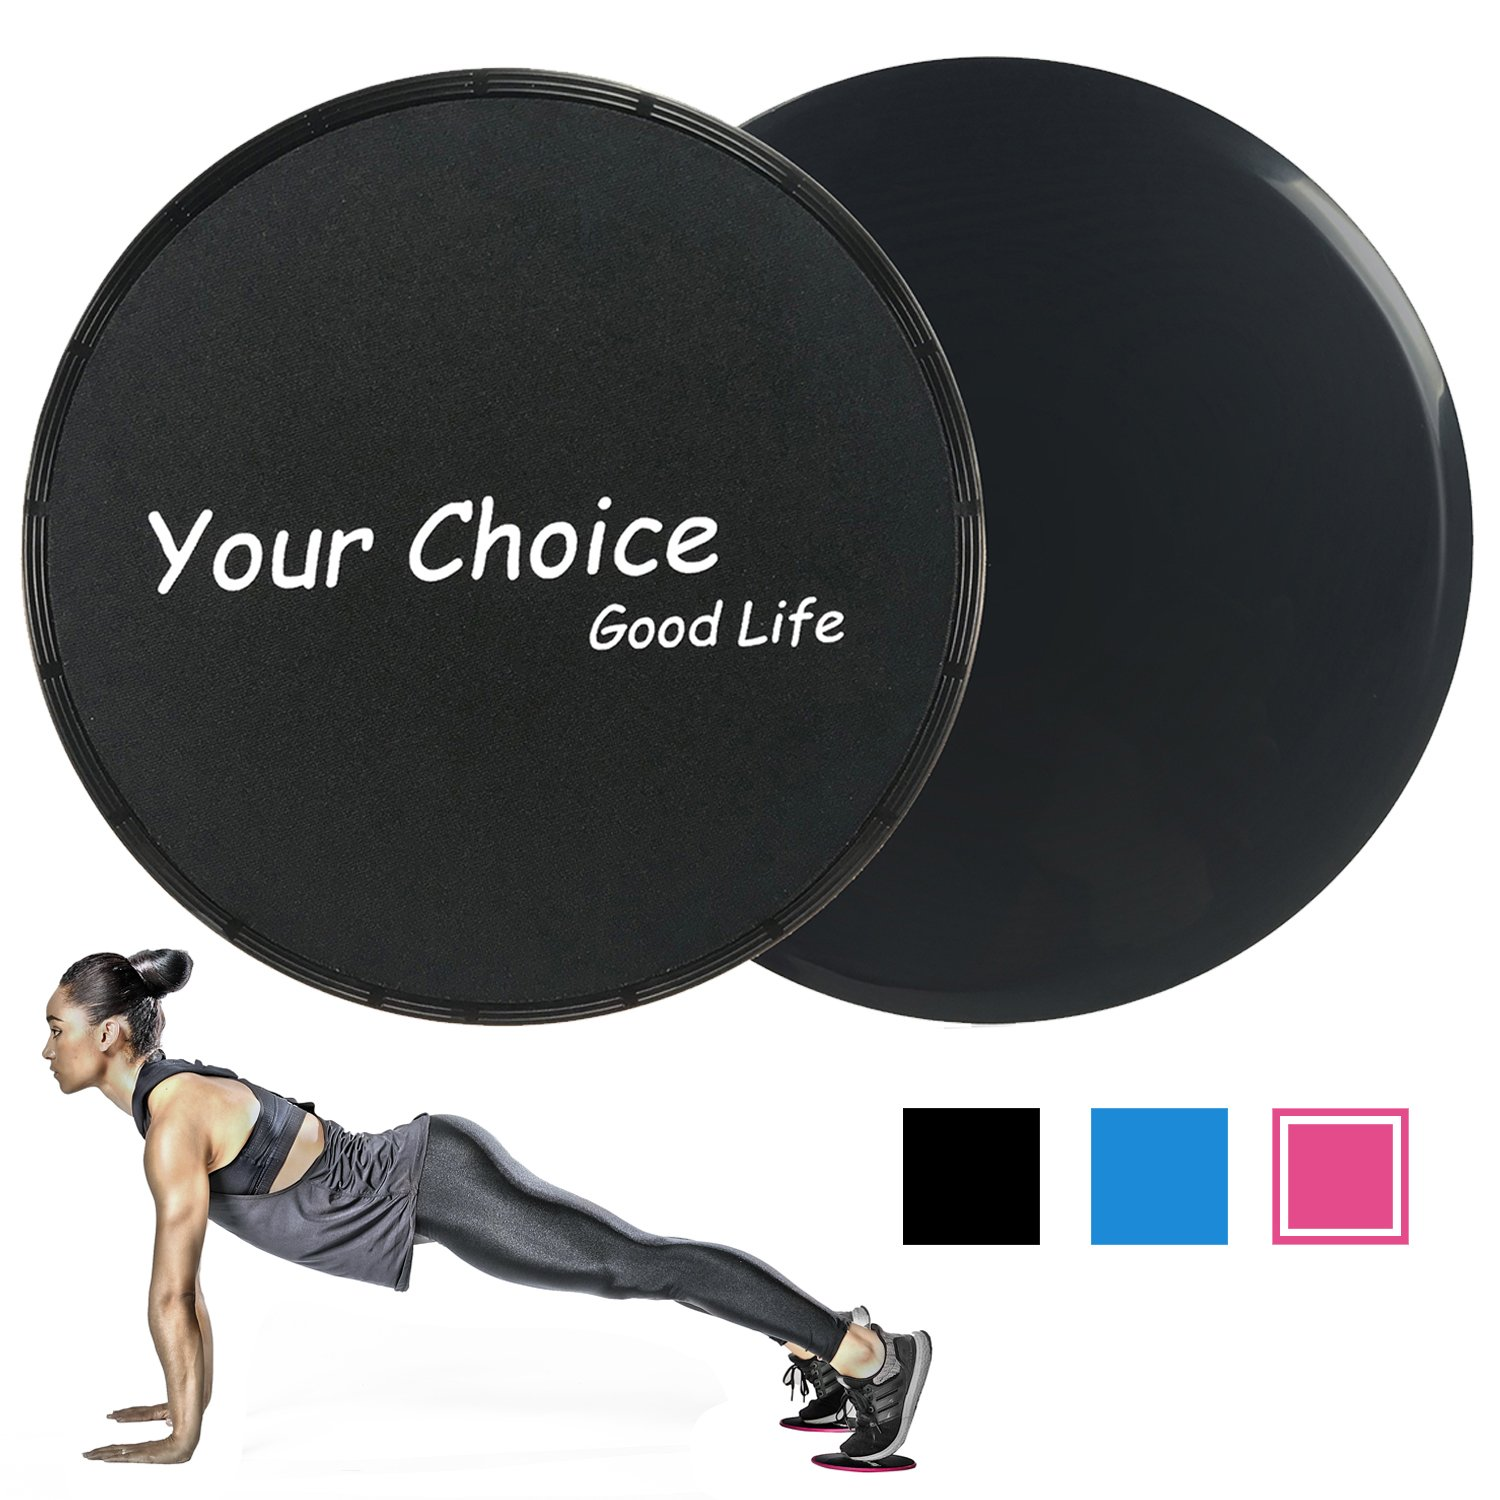 Your Choice Slider Fitbess Exercise Core Sliders Gliding Discs Abdominal Exercise Equipment, Color Black Set of 2